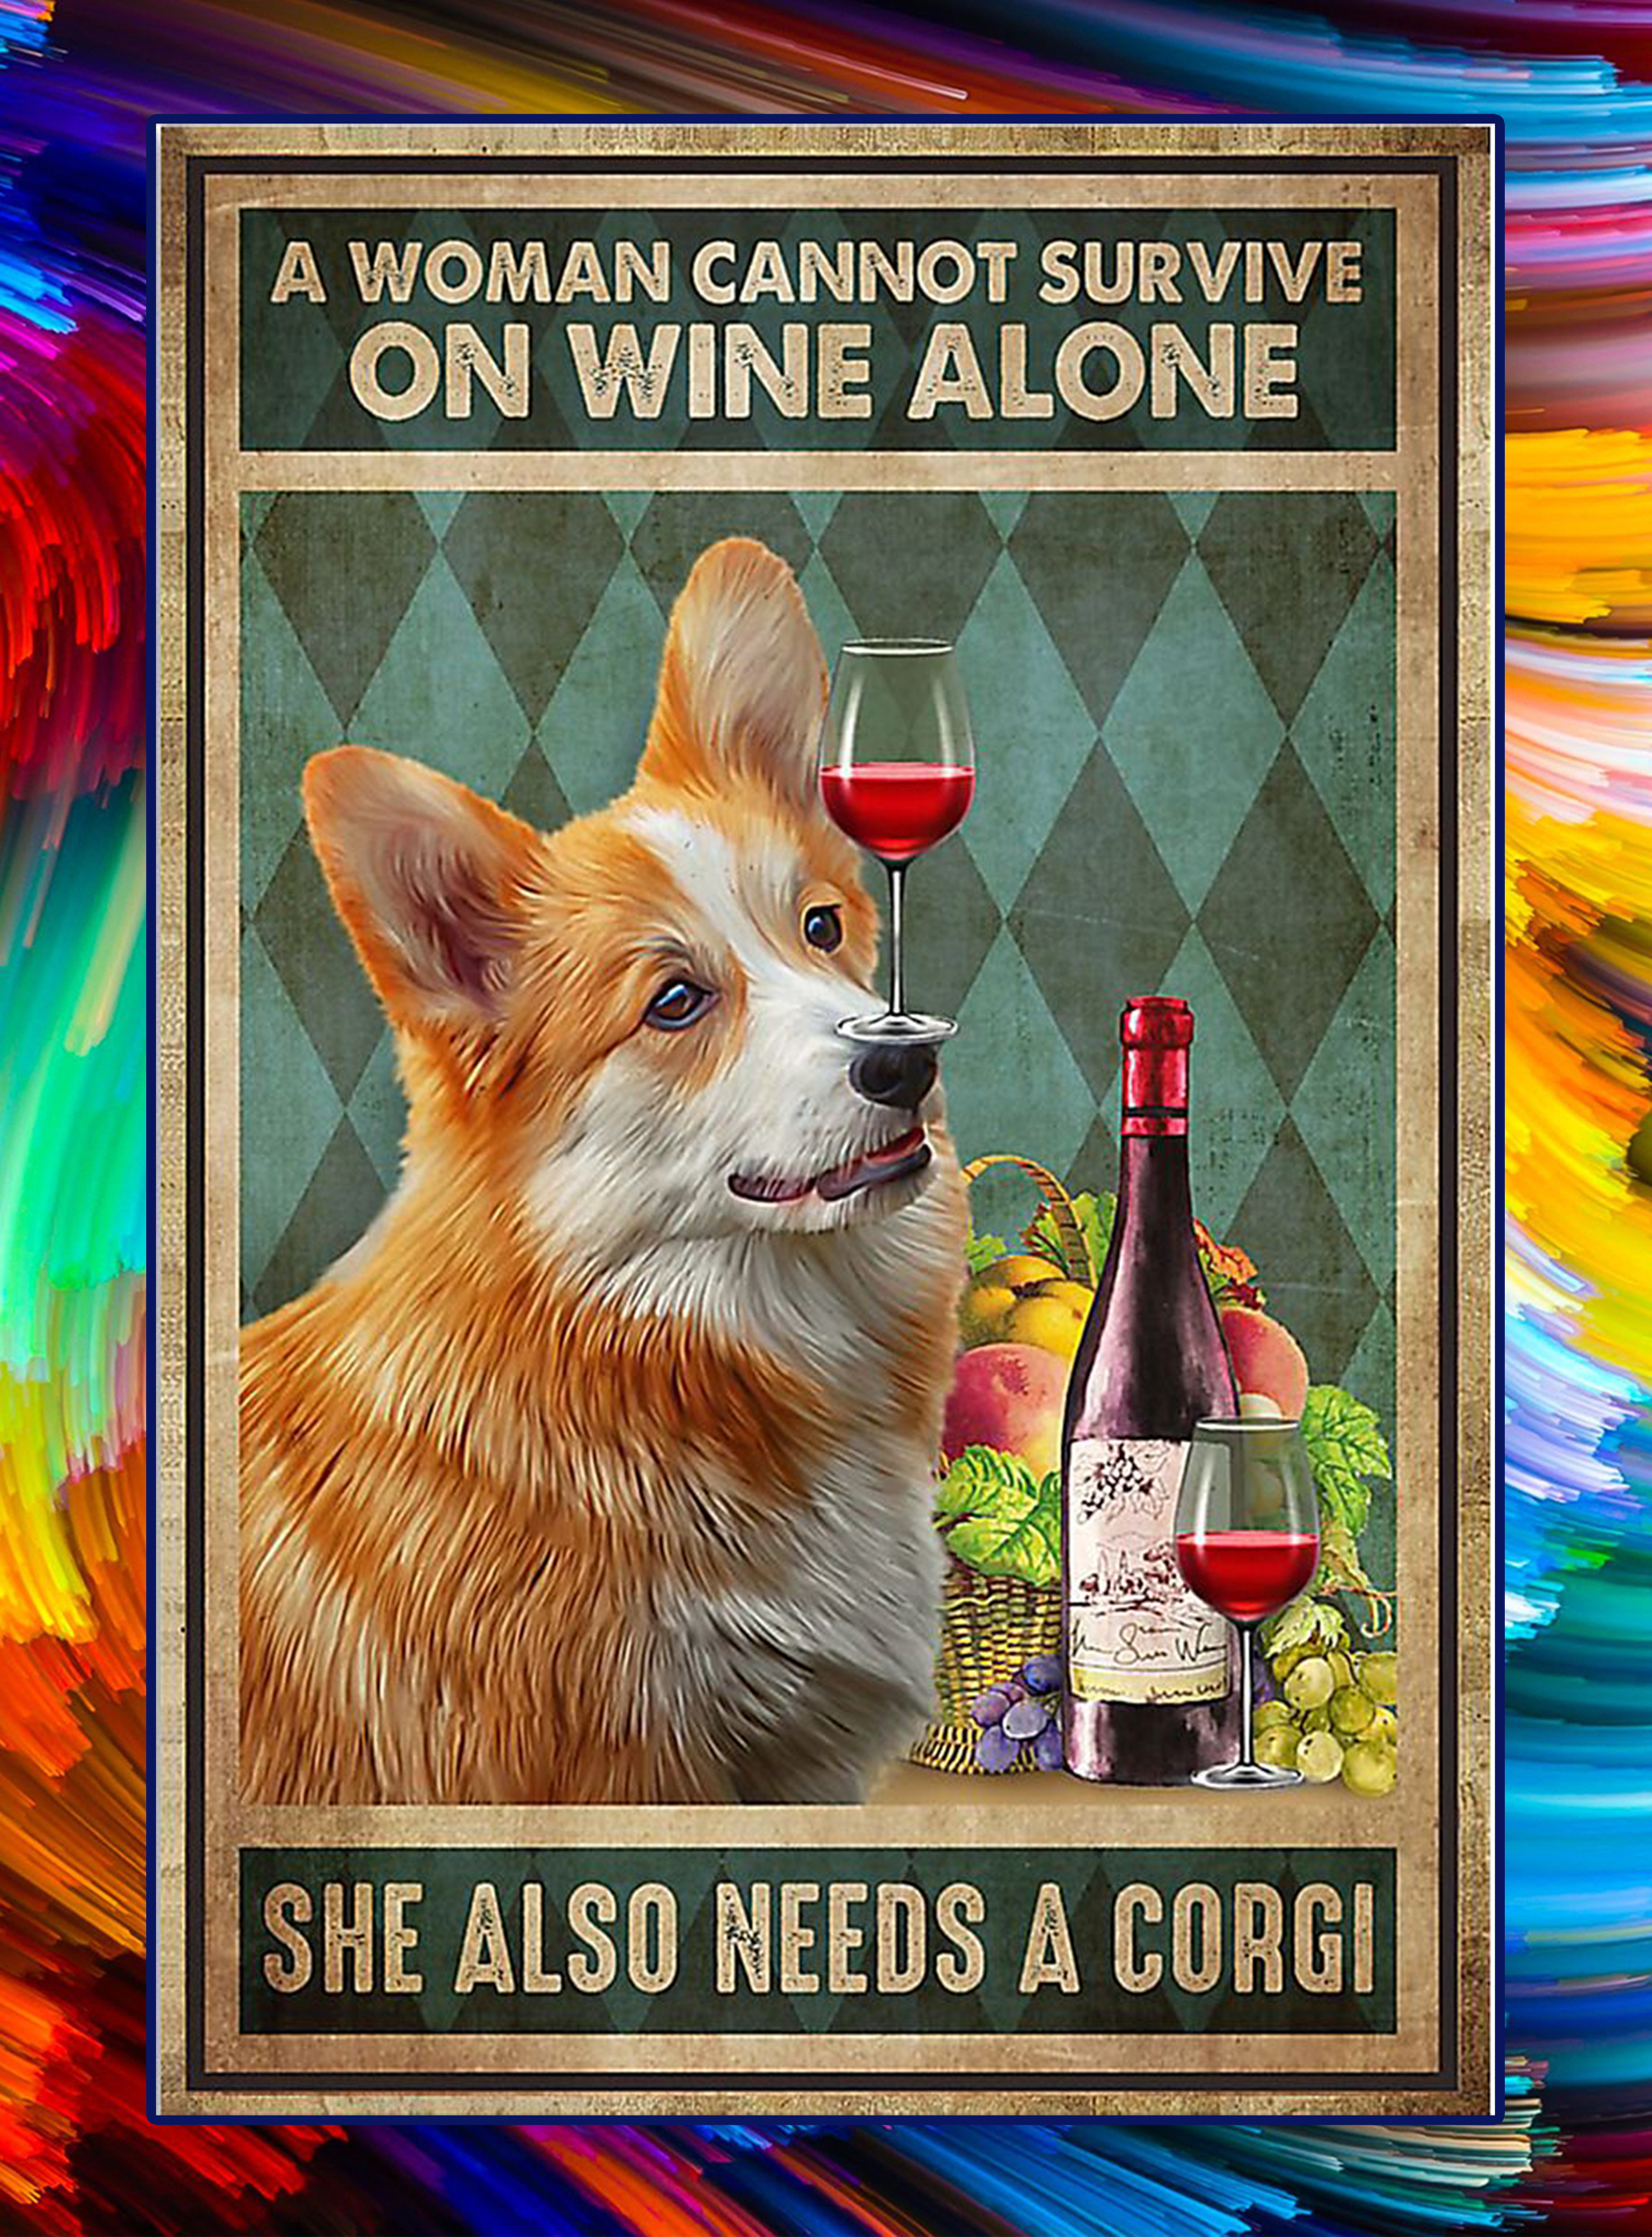 A woman cannot survive on wine alone she also needs a corgi poster - A1